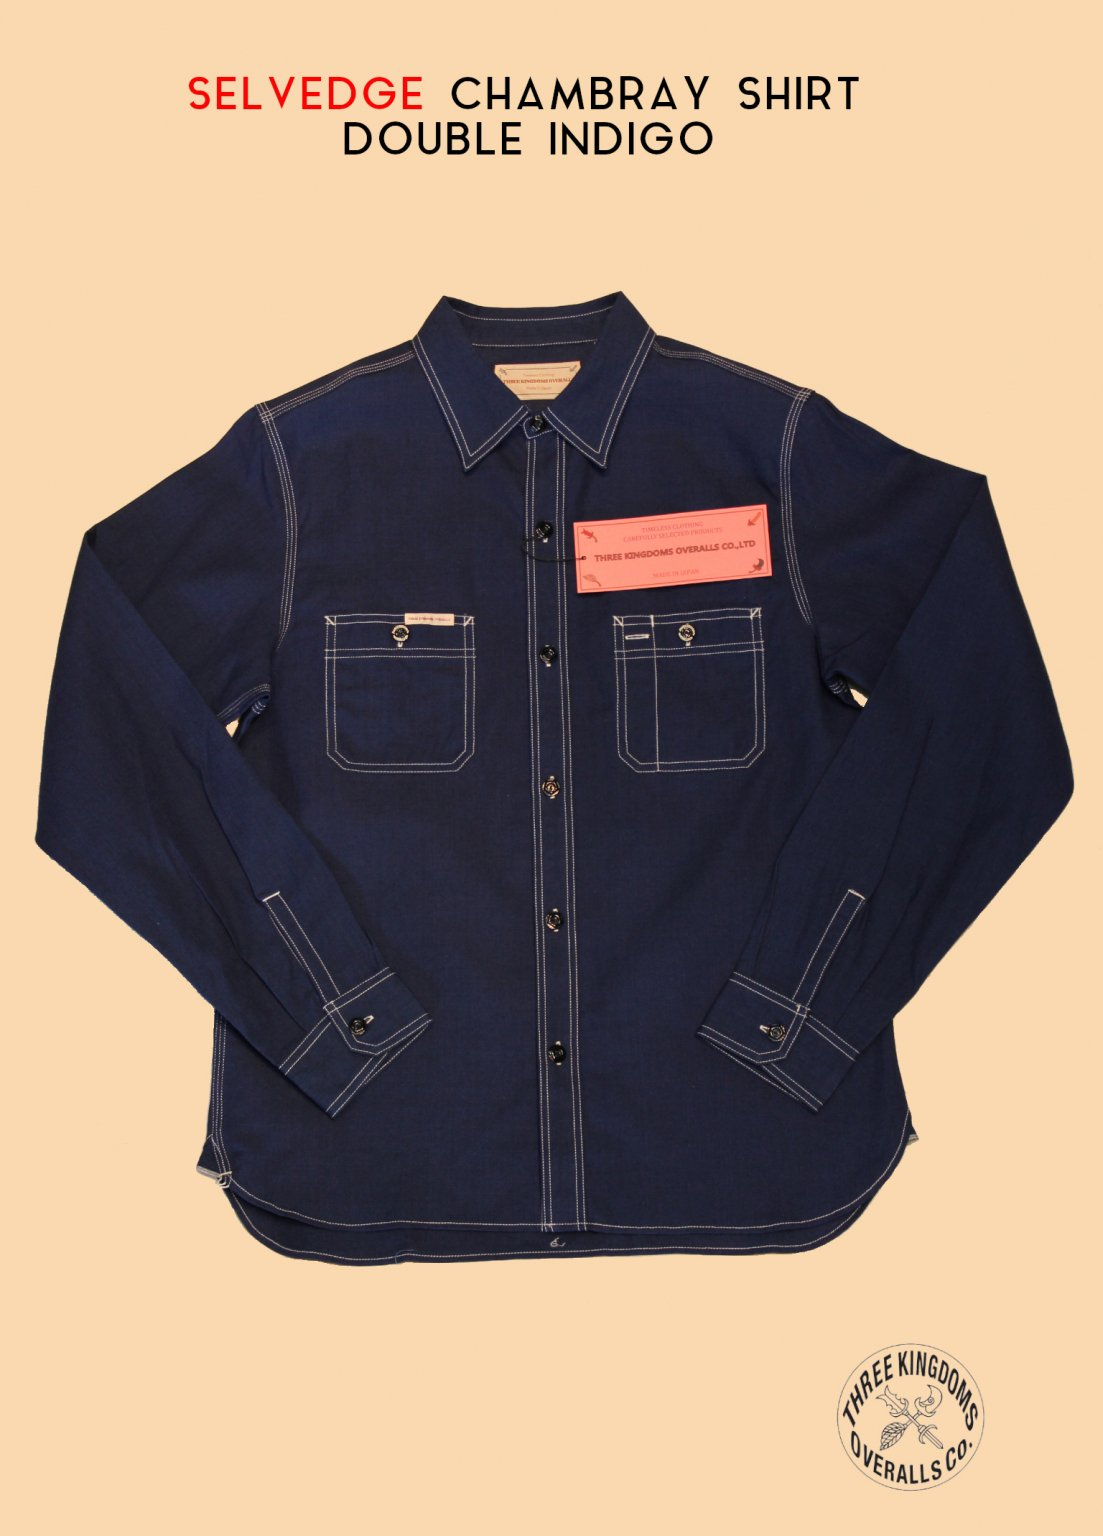 CB01Si CHAMBRAY SHIRT (DOUBLE INDIGO)<img class='new_mark_img2' src='https://img.shop-pro.jp/img/new/icons14.gif' style='border:none;display:inline;margin:0px;padding:0px;width:auto;' />